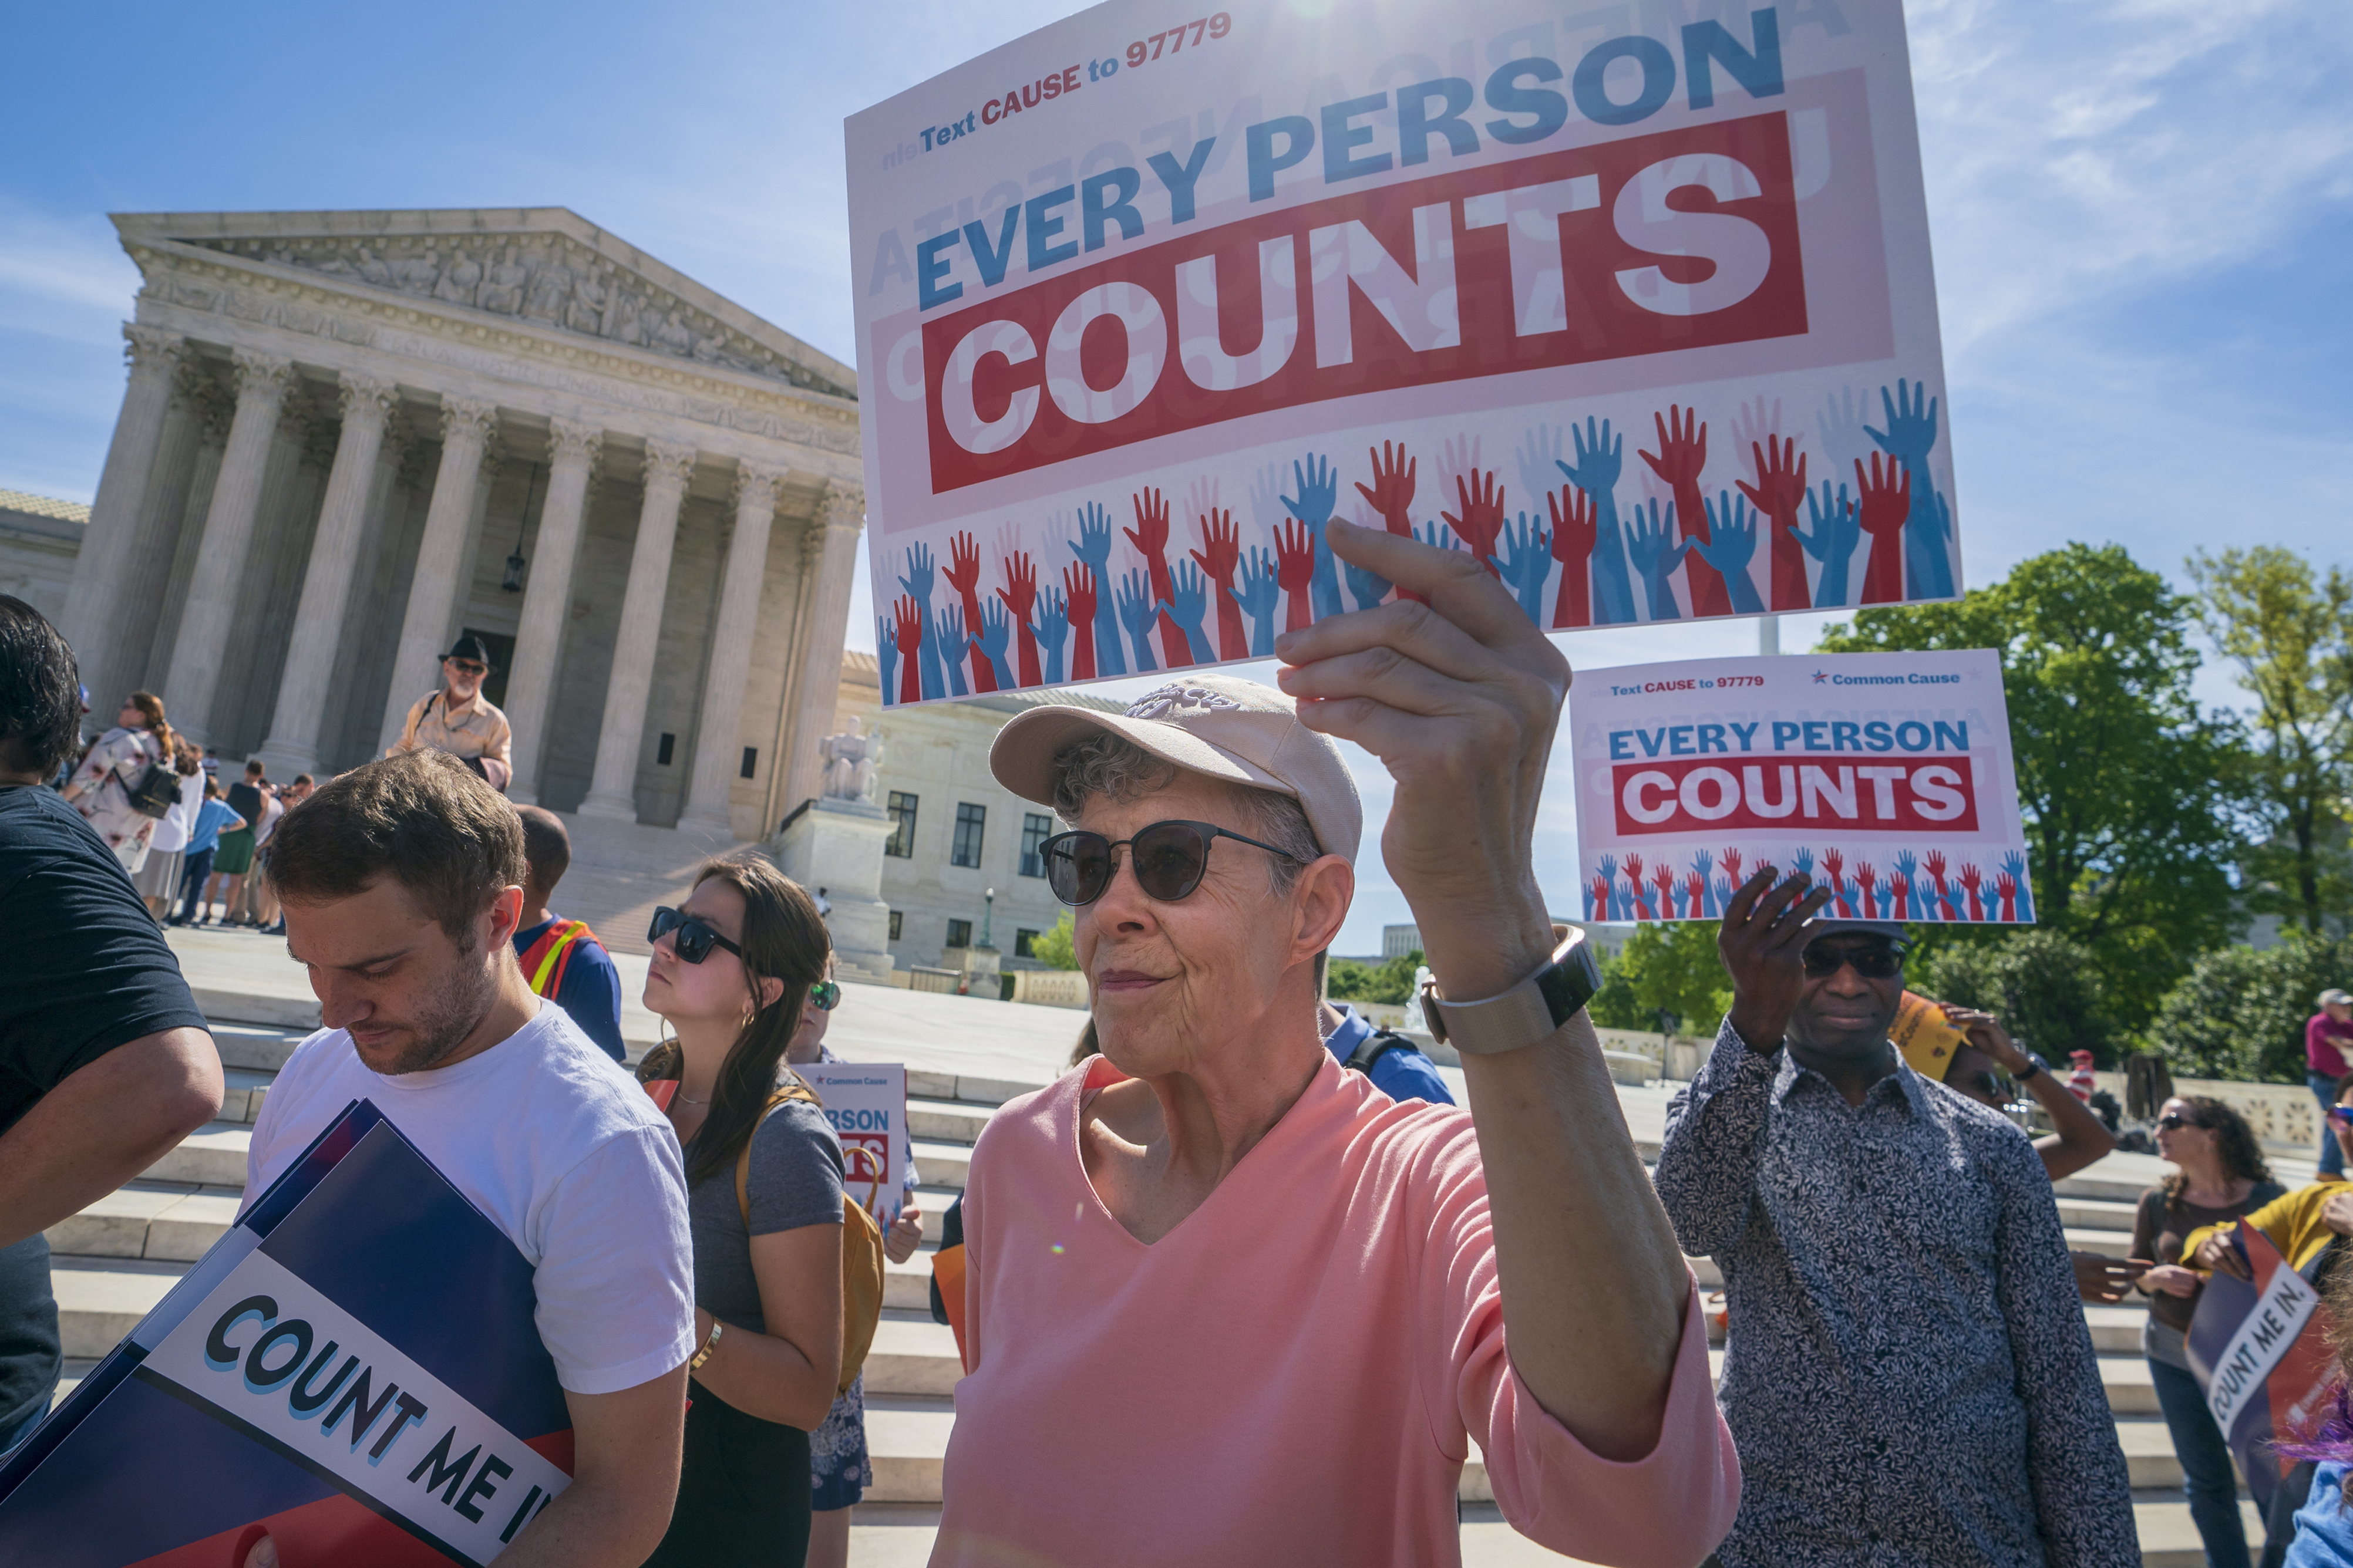 Immigration activists rally outside the Supreme Court as the justices hear arguments over the Trump administration's plan to ask about citizenship on the 2020 census, in Washington D.C., on April 23, 2019.